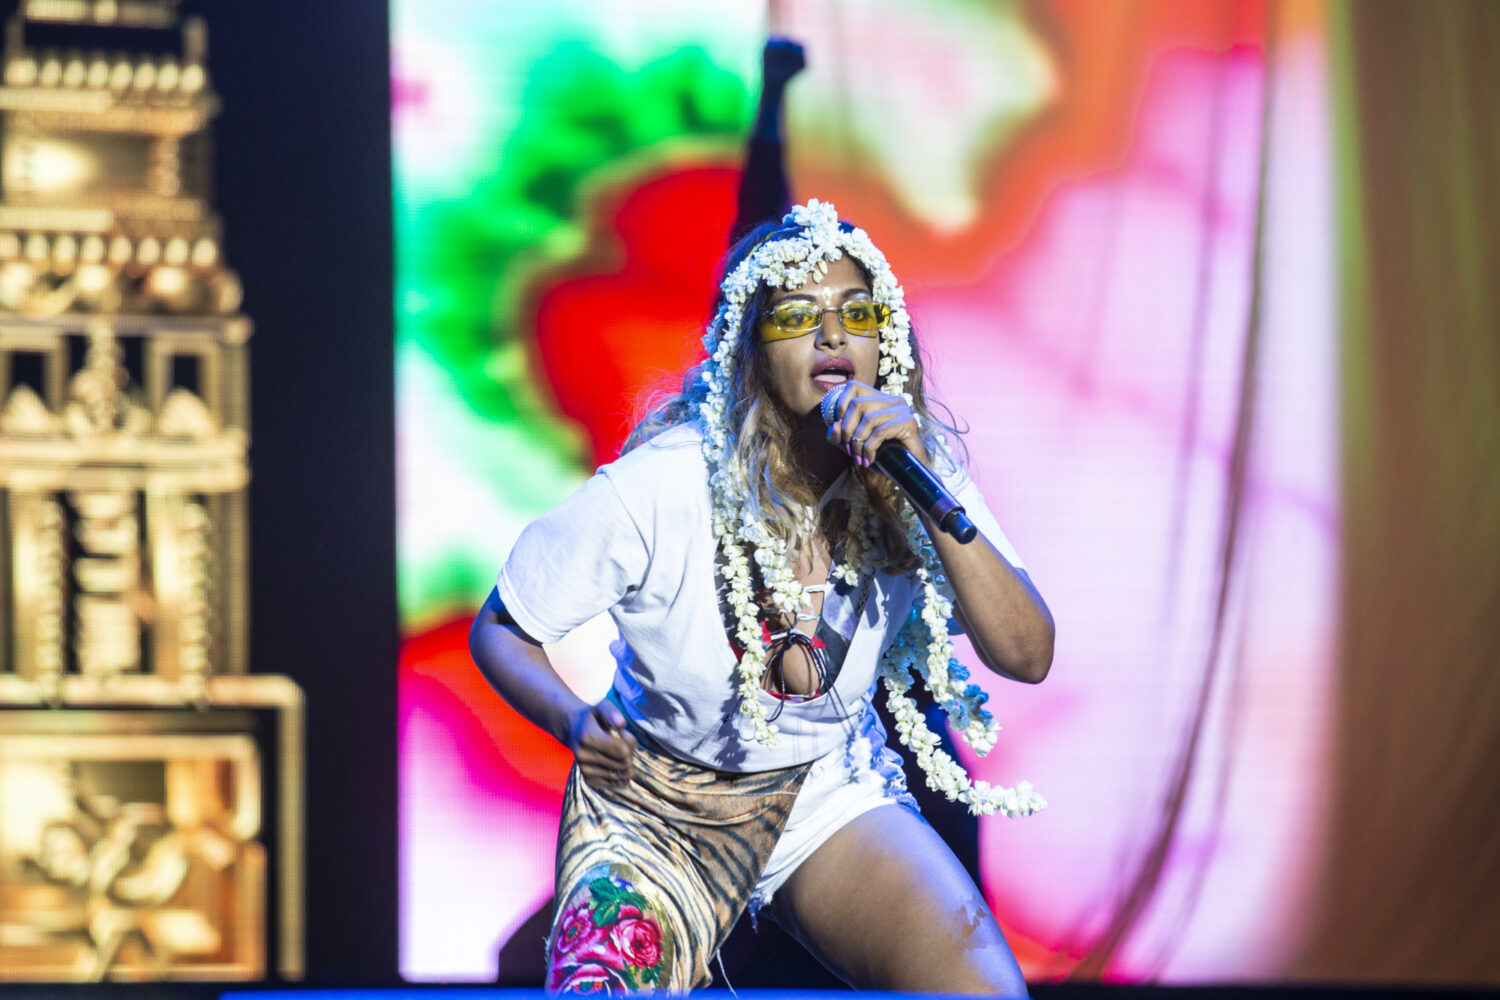 M.I.A. says she's quitting music for a while